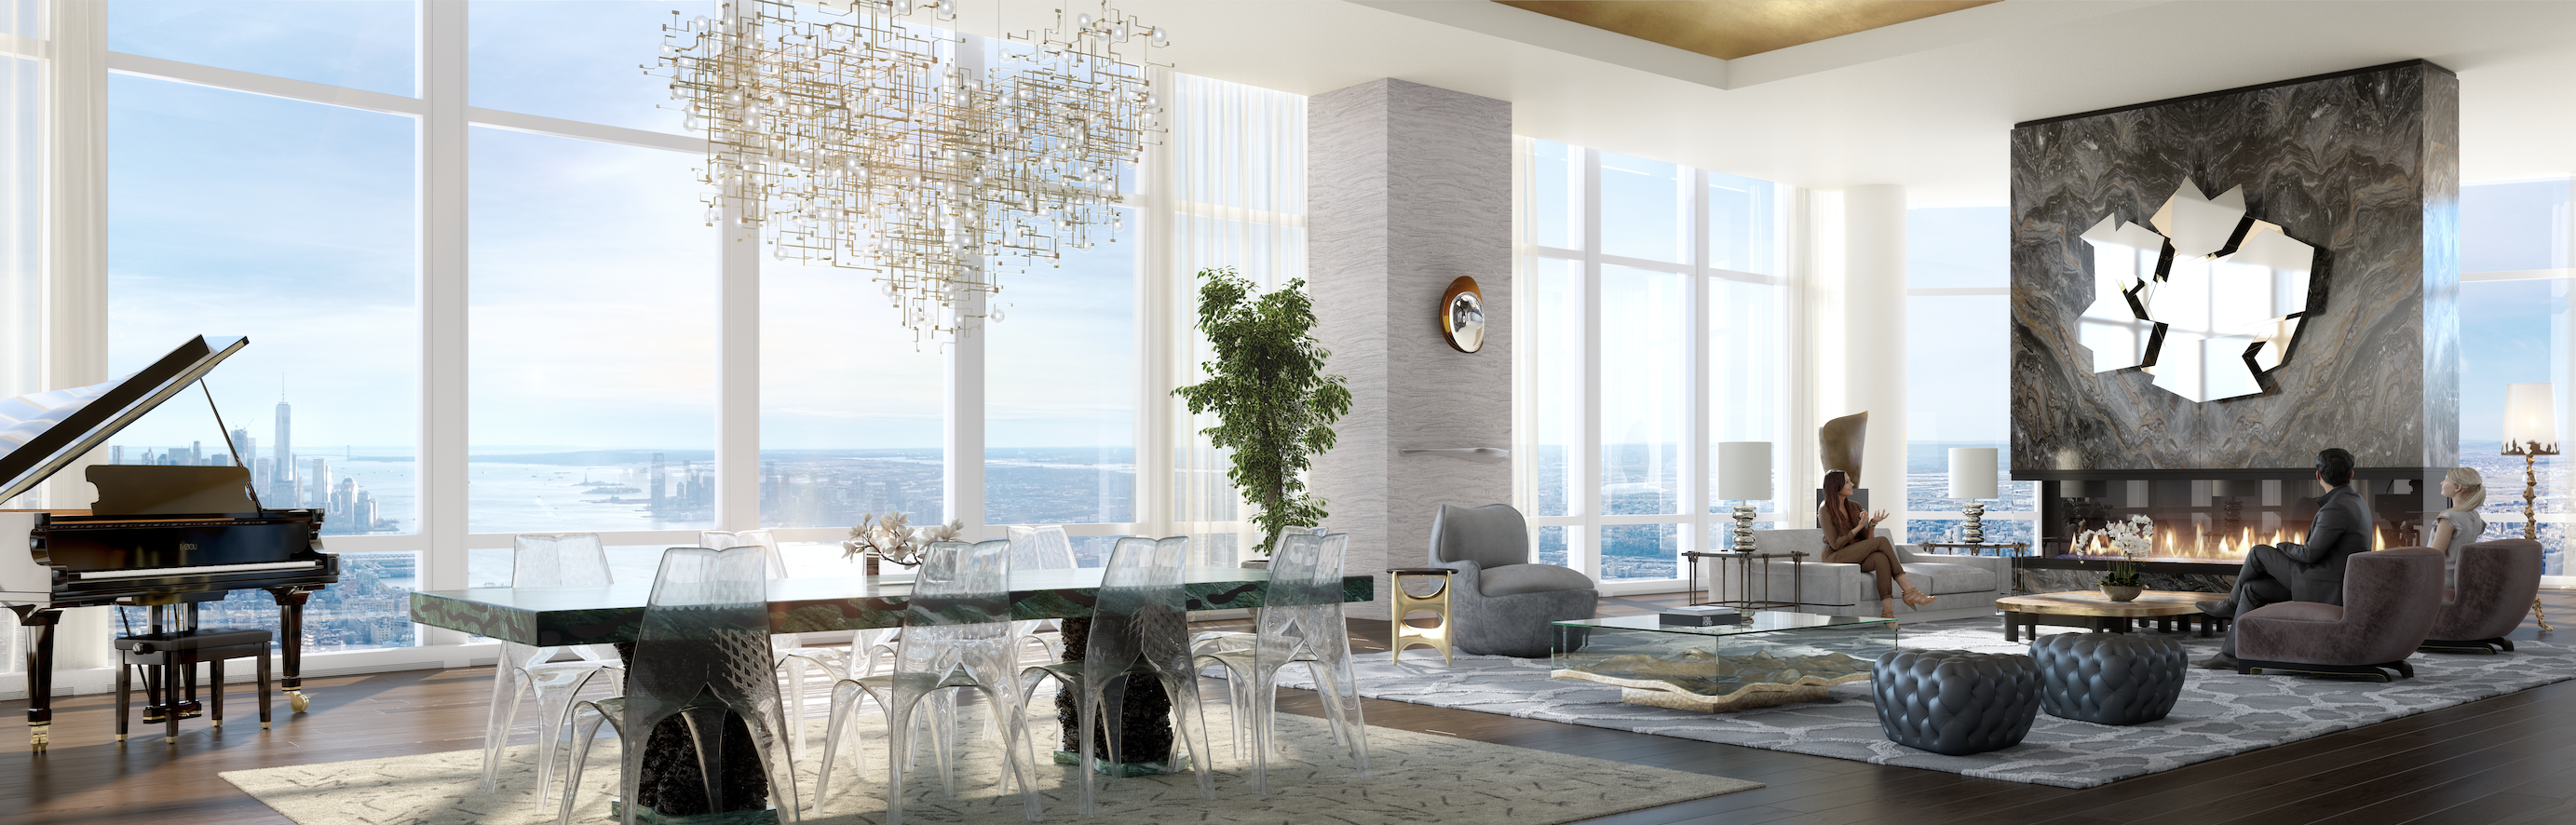 A penthouse in a skyscraper showing floor-to-ceiling windows, views of the Manhattan skyline, a fireplace, a rectangular dining table and a living area with several couches on the right side.